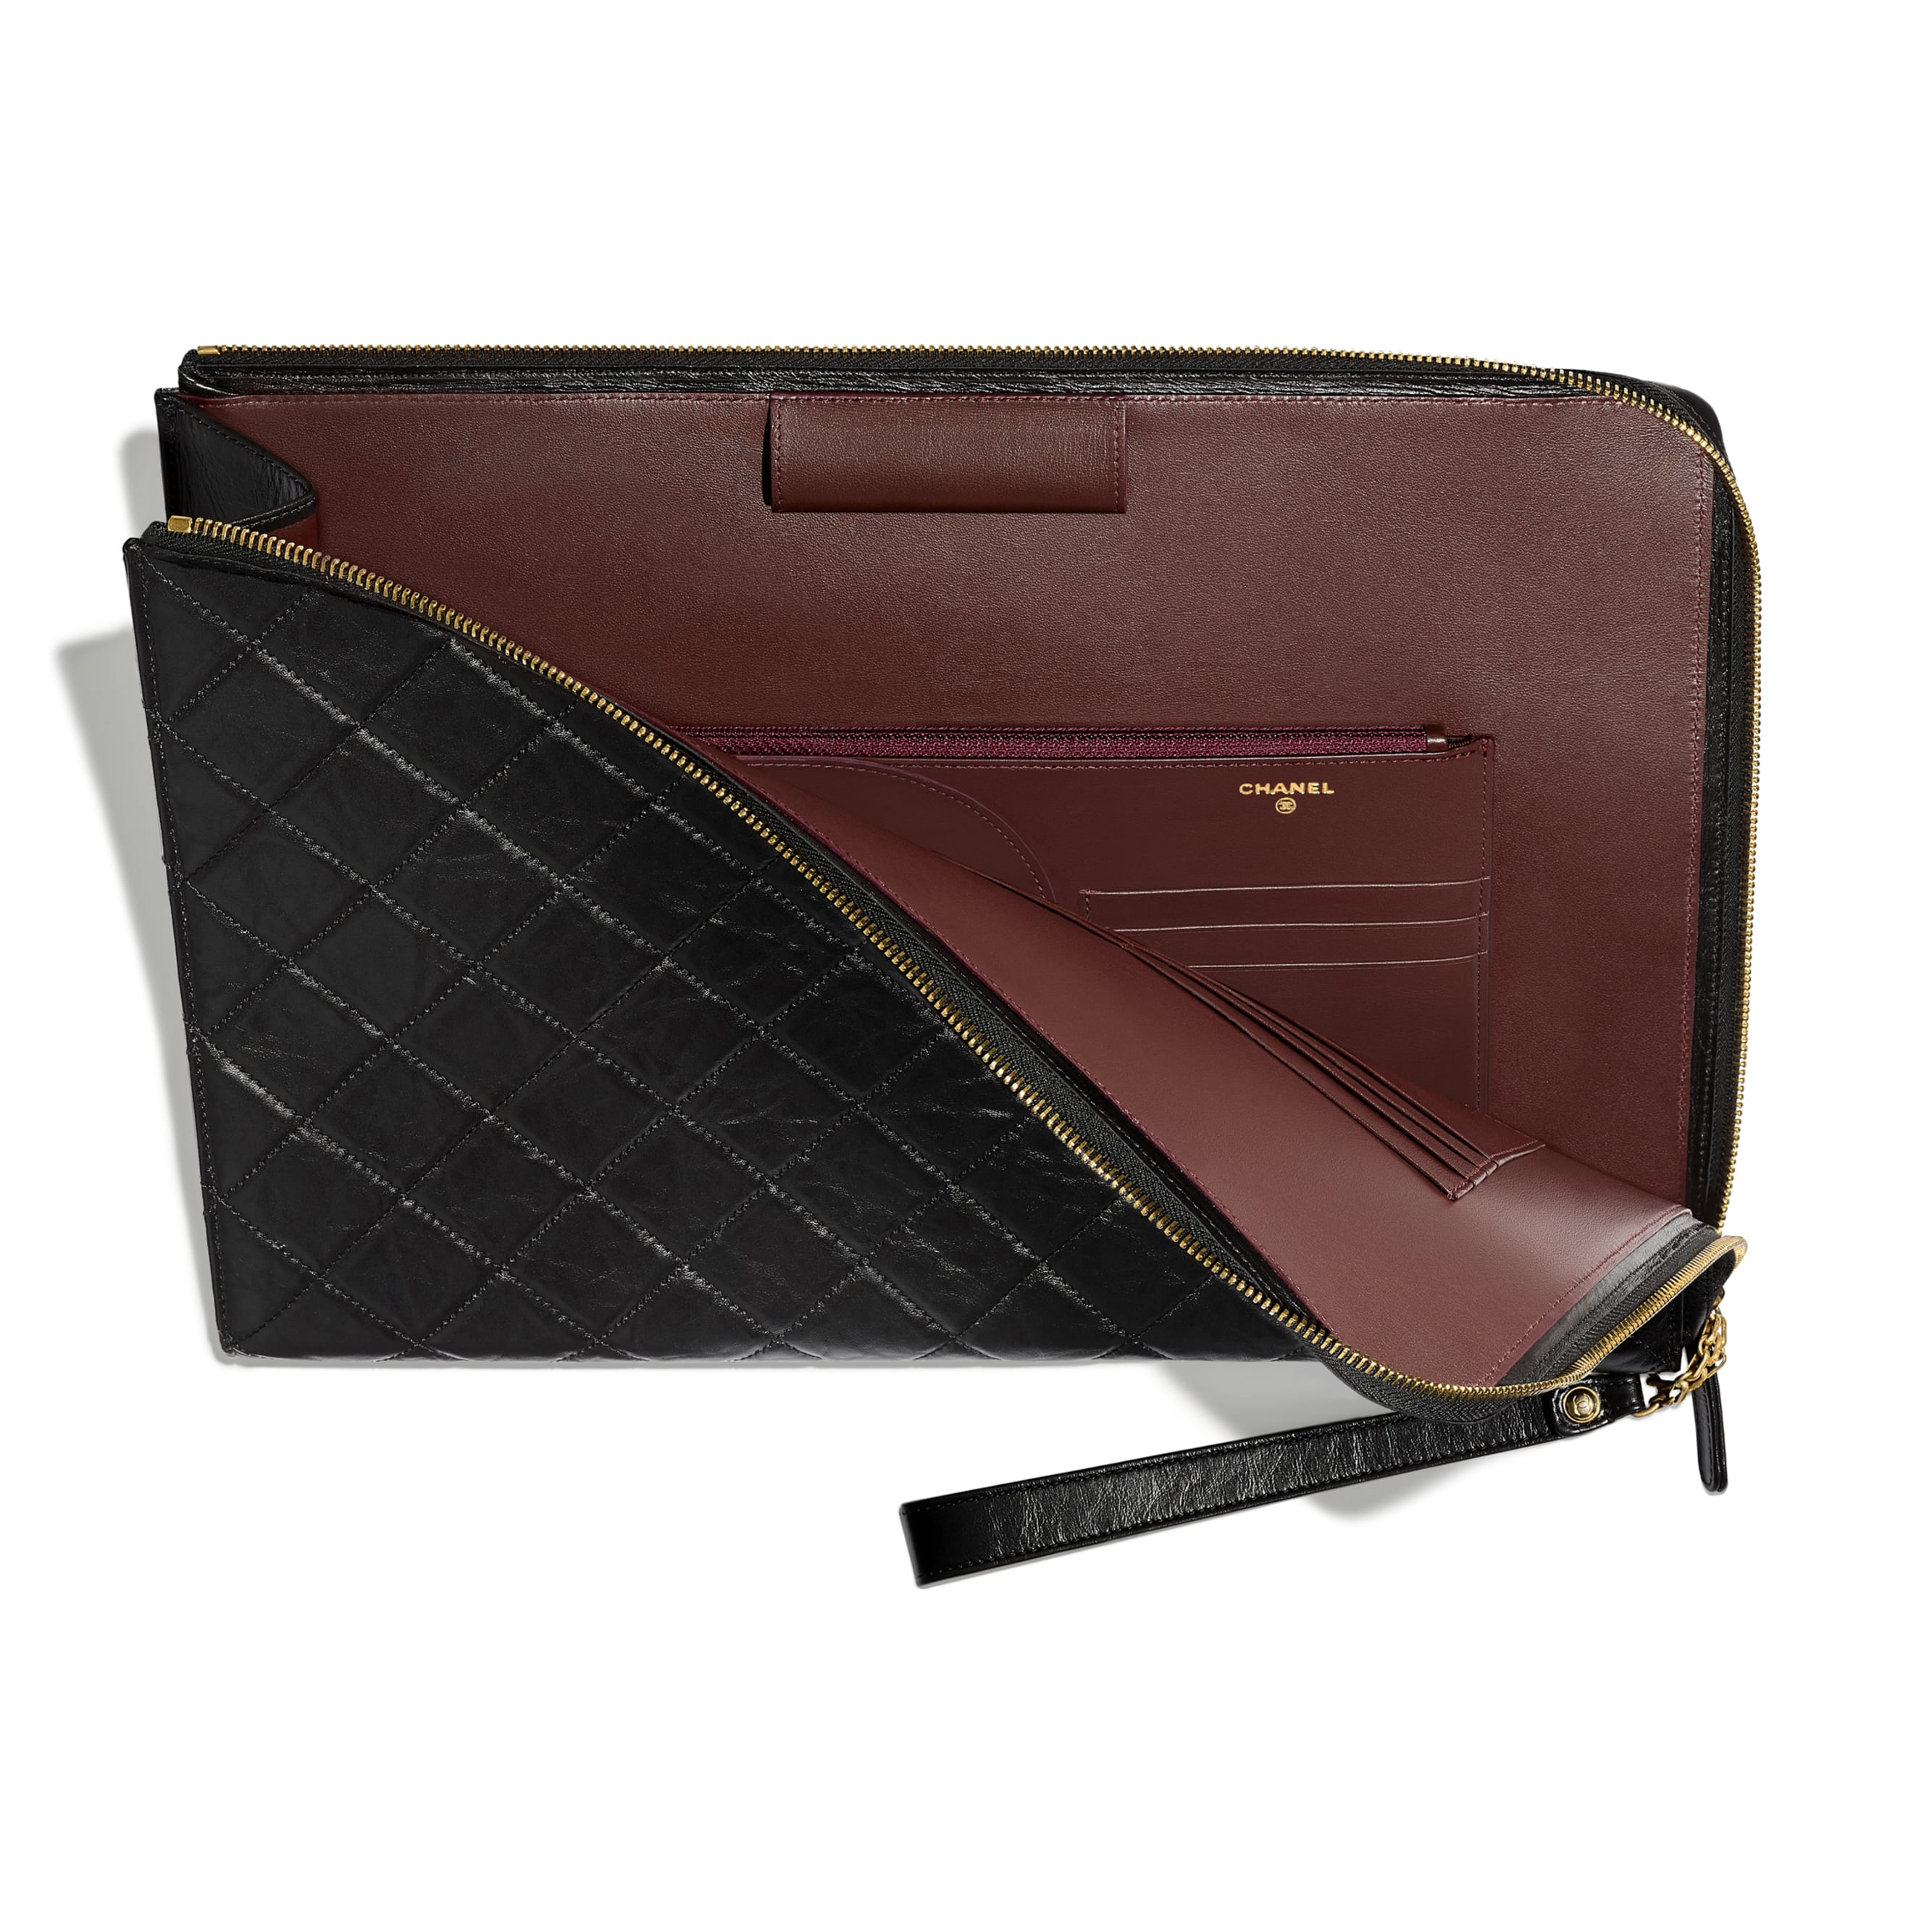 2.55 Pouch - Black - Aged Calfskin & Gold-Tone Metal - CHANEL - Other view - see standard sized version